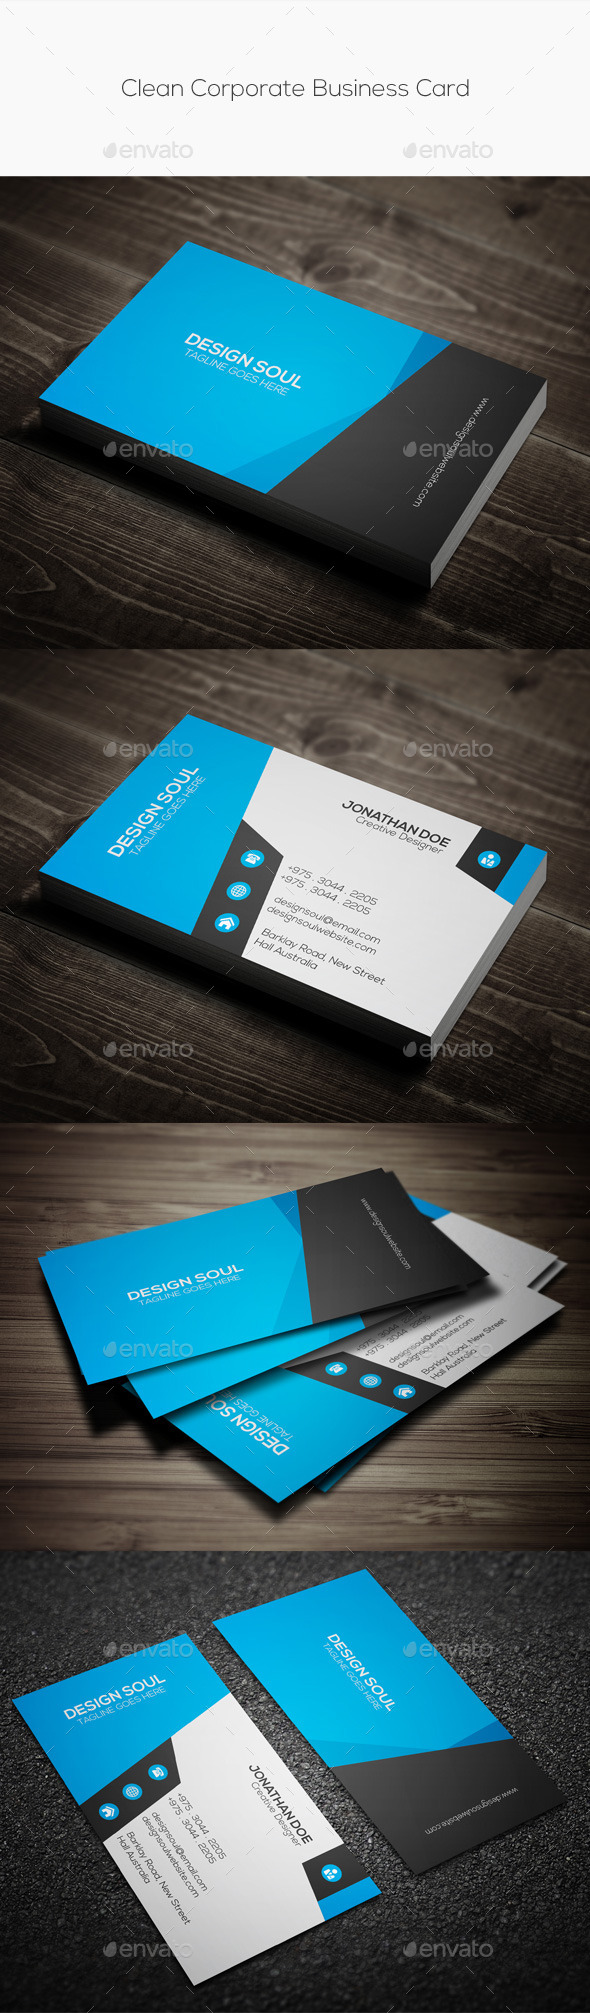 GraphicRiver Clean Corporate Business Card 10185379